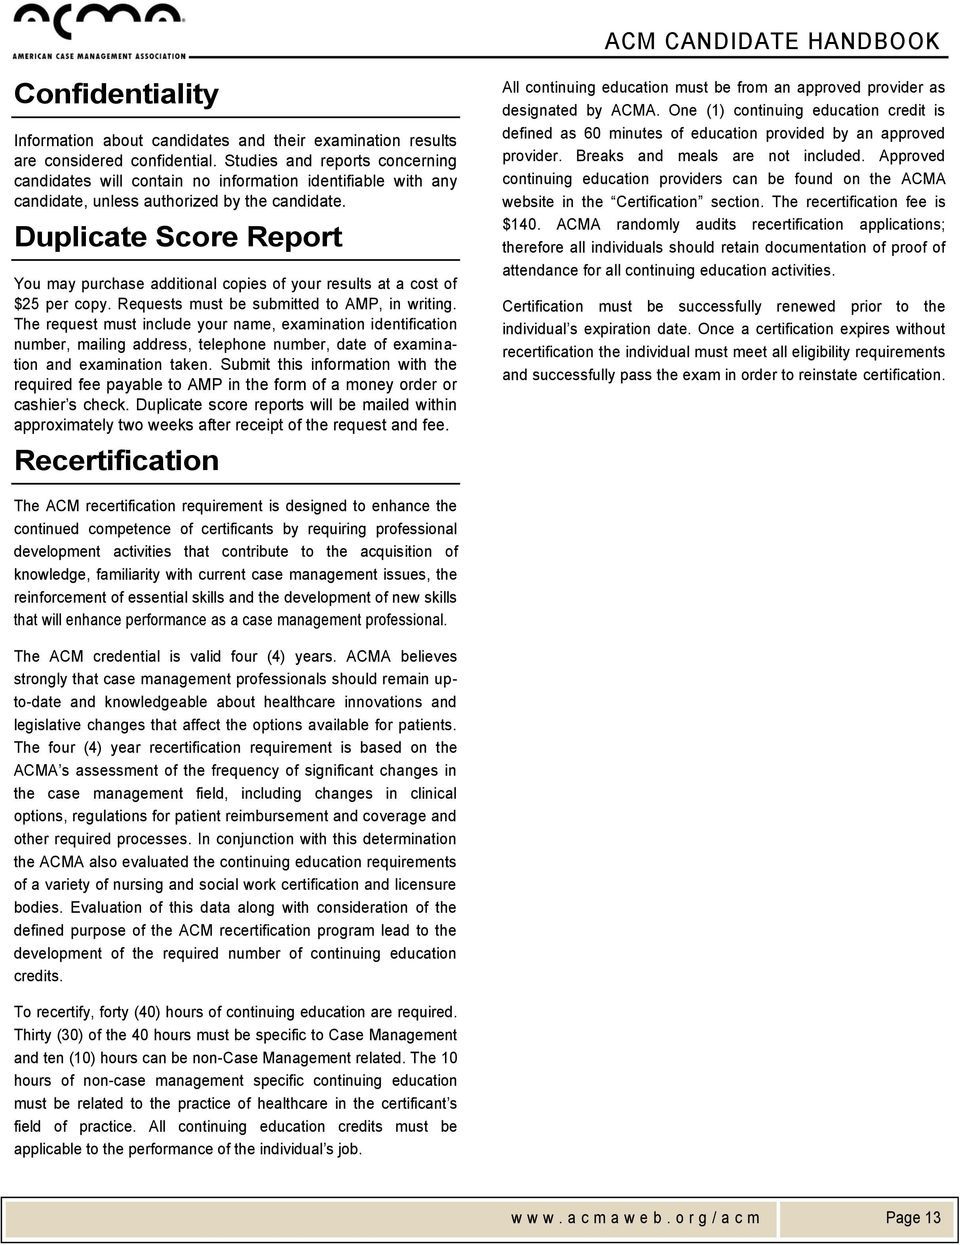 Duplicate Score Report You may purchase additional copies of your results  at a cost of $25